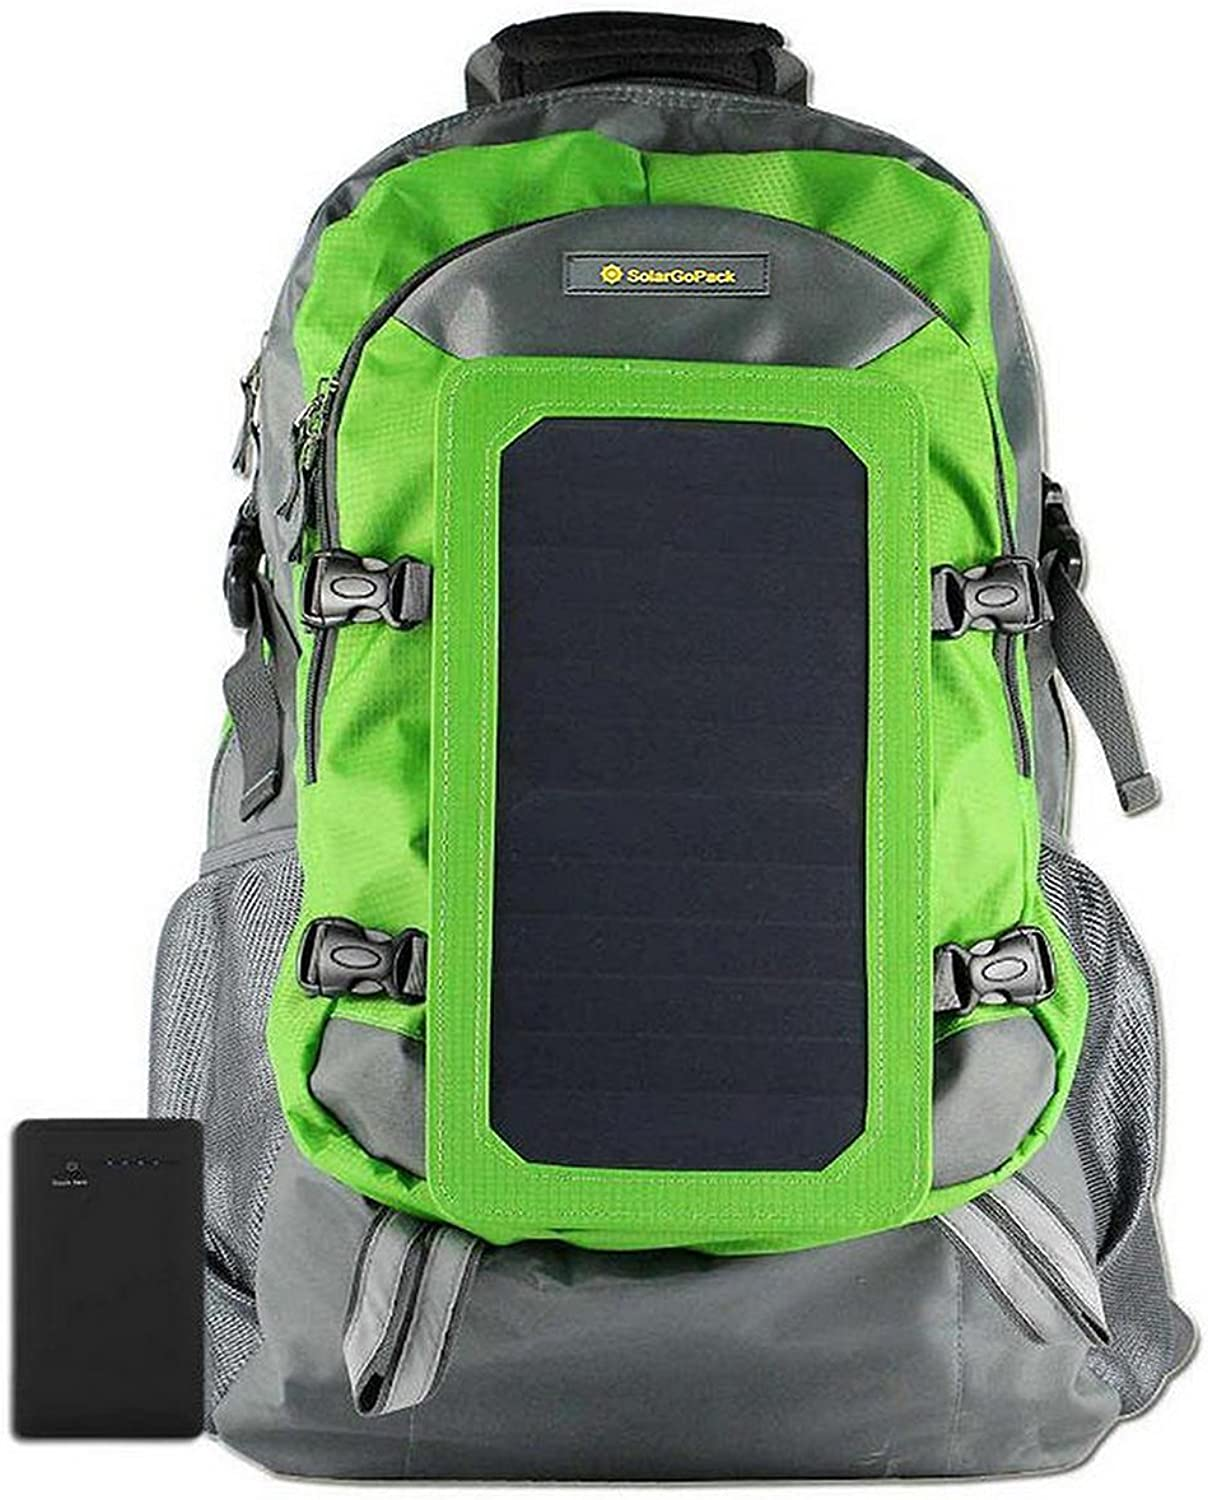 SolarGoPack Solar Powered Backpack   7 Watt Solar Panel and 10K mAh Charging Battery Daypack Phone and Electronic Device Power Charger Back Pack